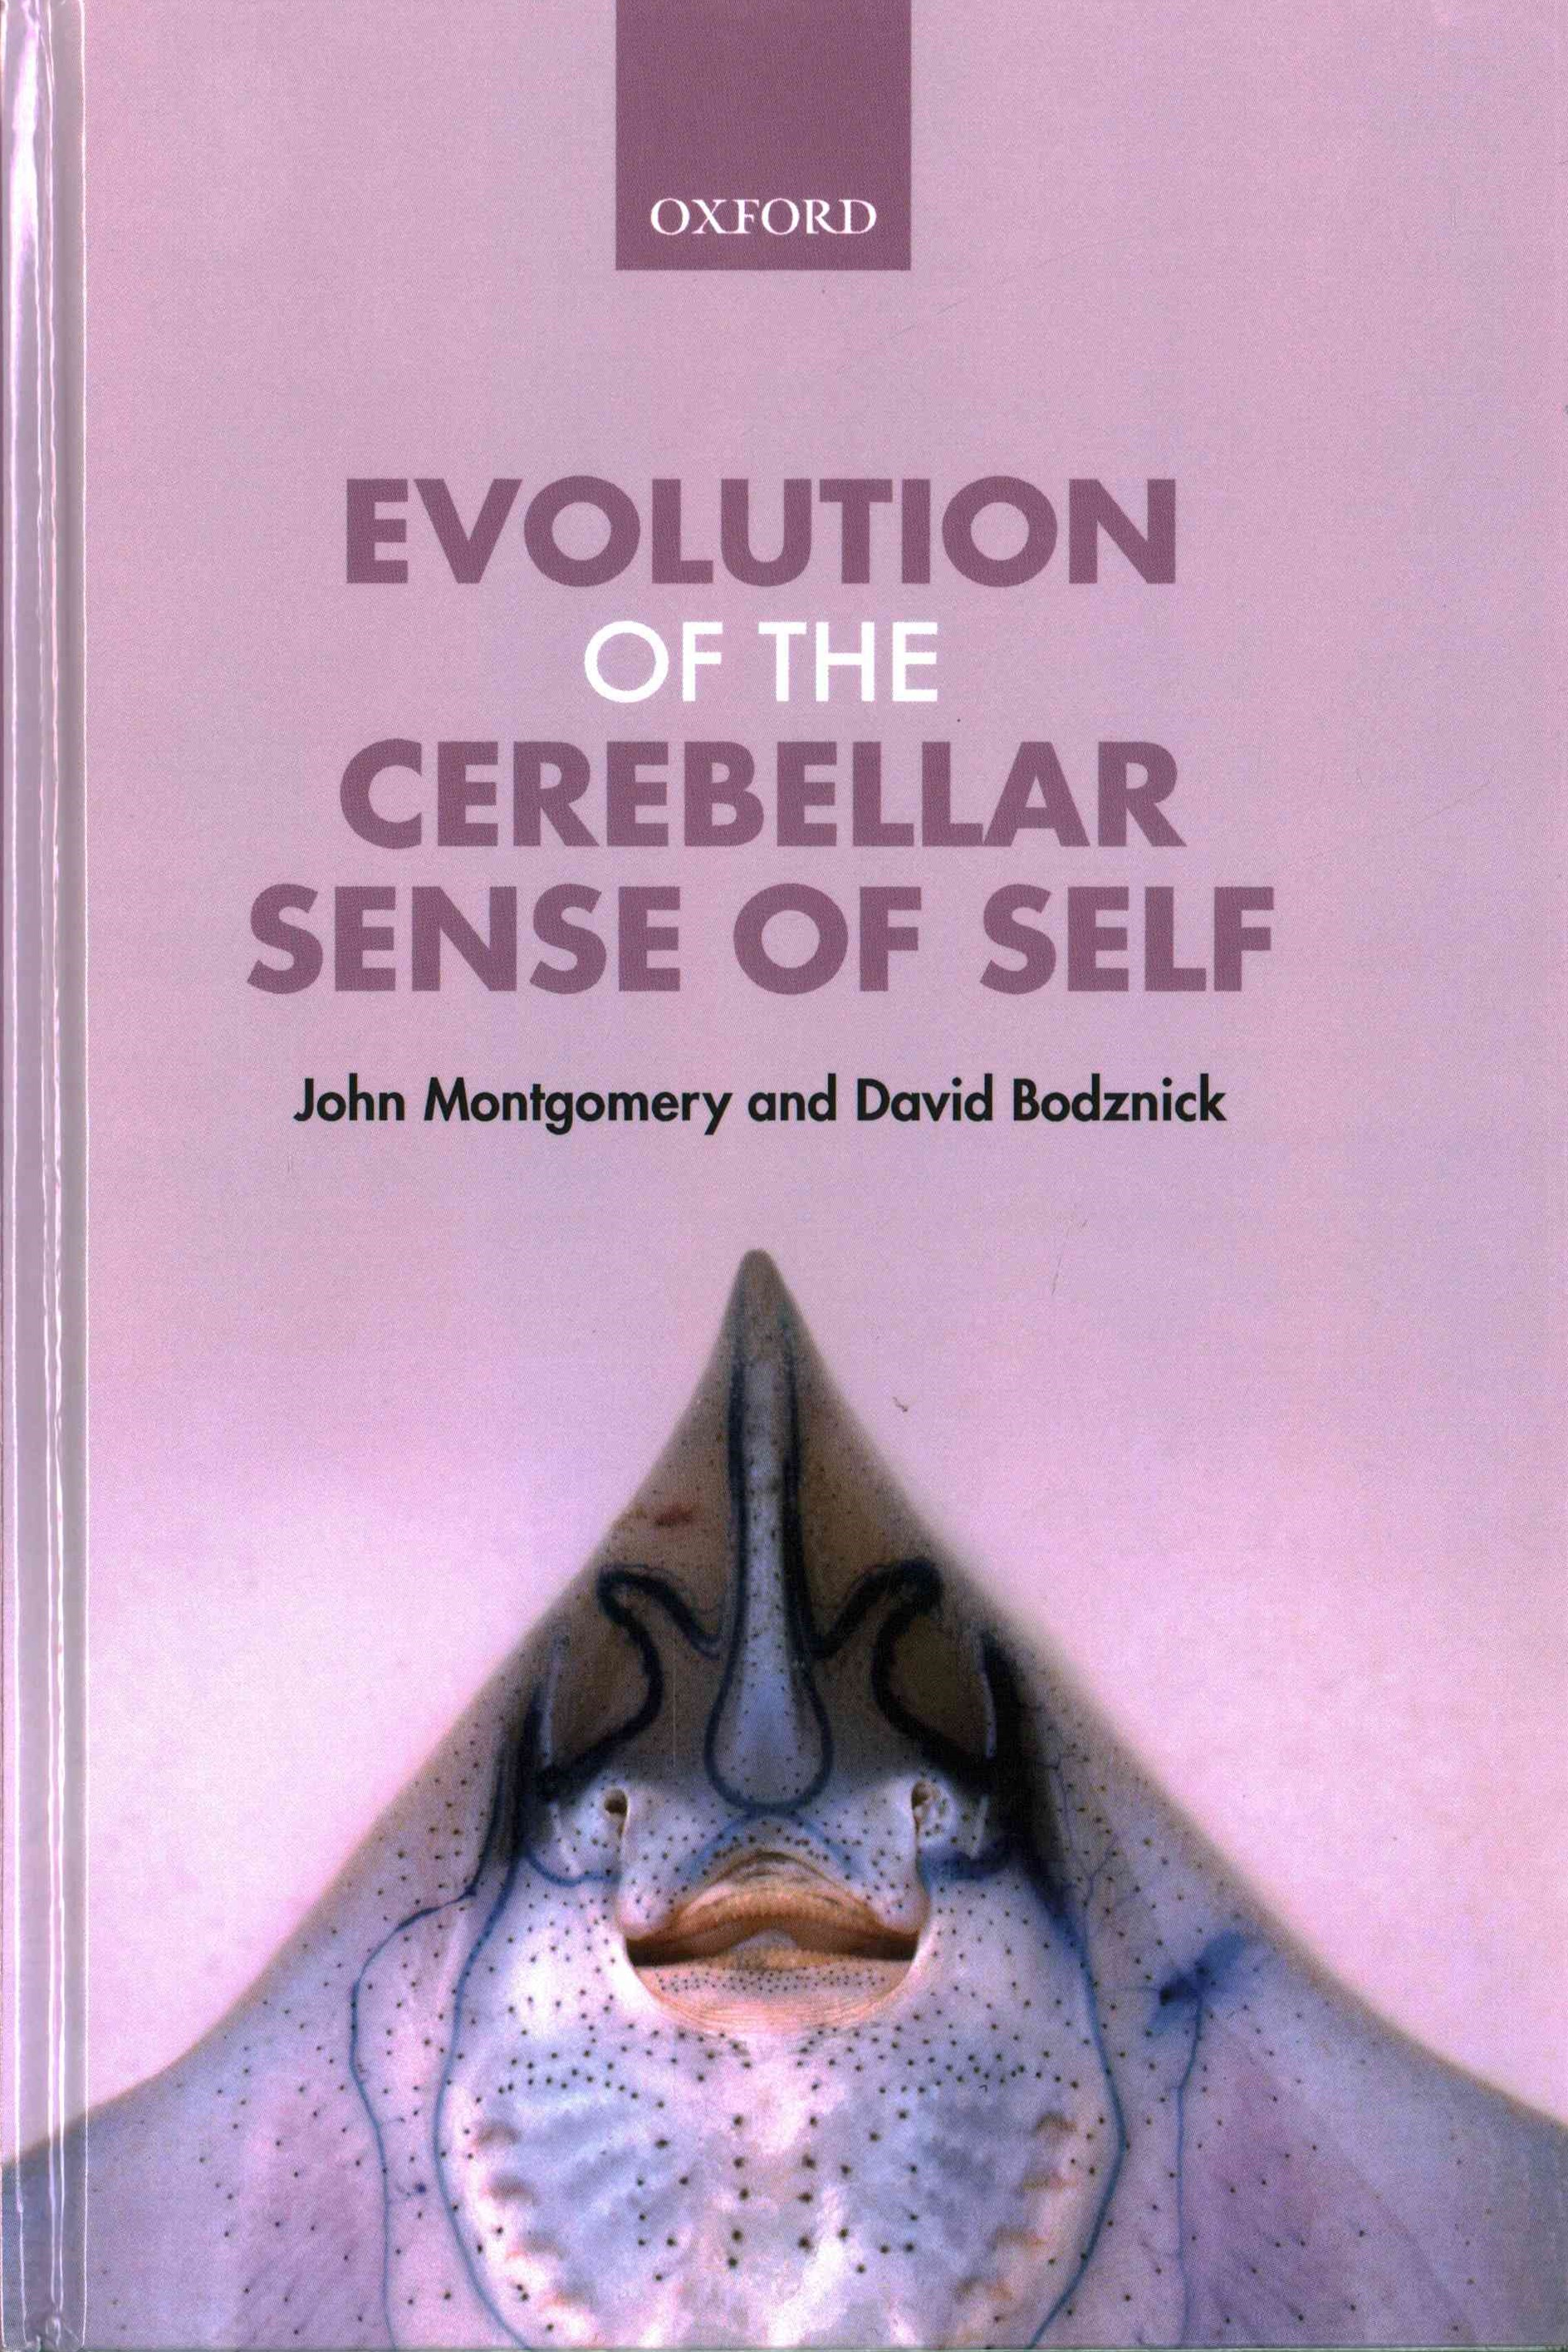 Evolution of the Cerebellar Sense of Self